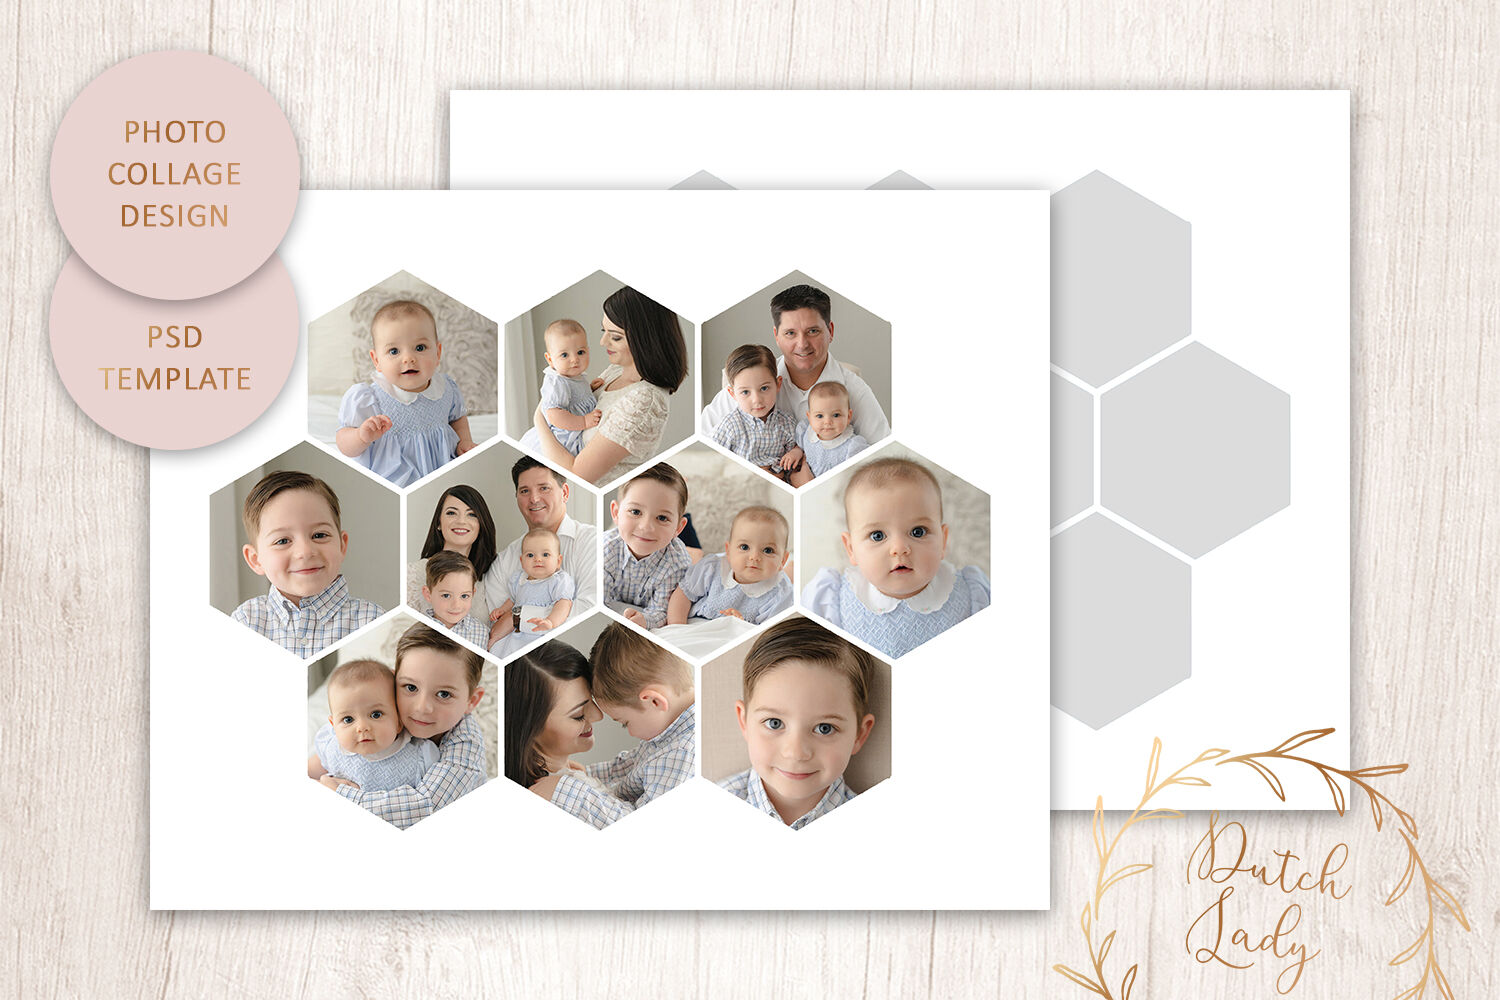 Psd Photo Collage Template 6 By The Dutch Lady Designs